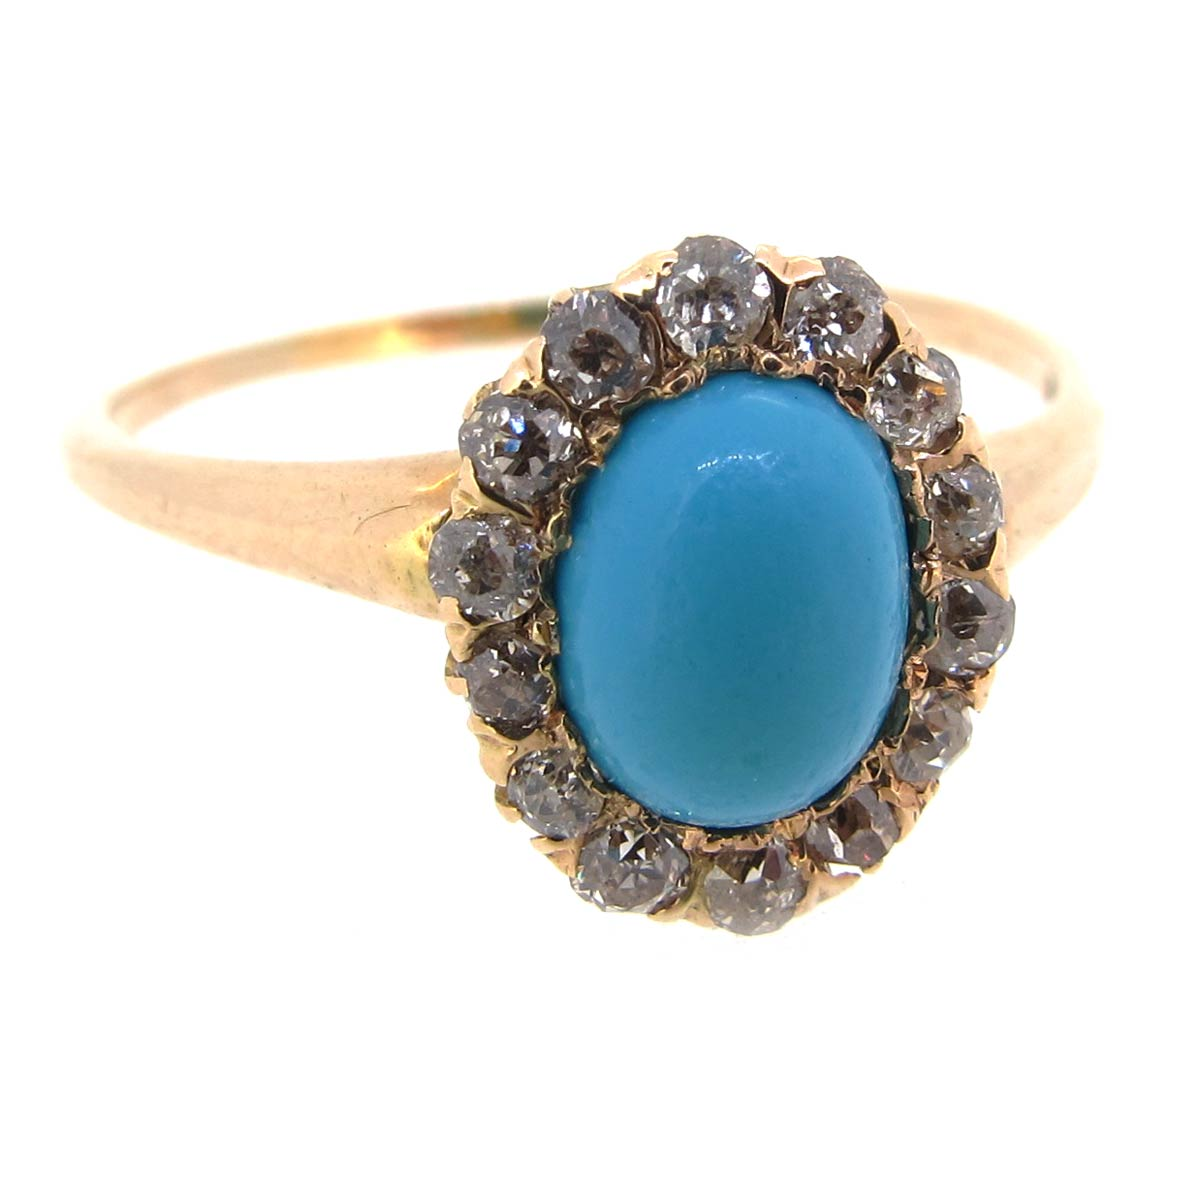 Antique Diamond & Turquoise Ring